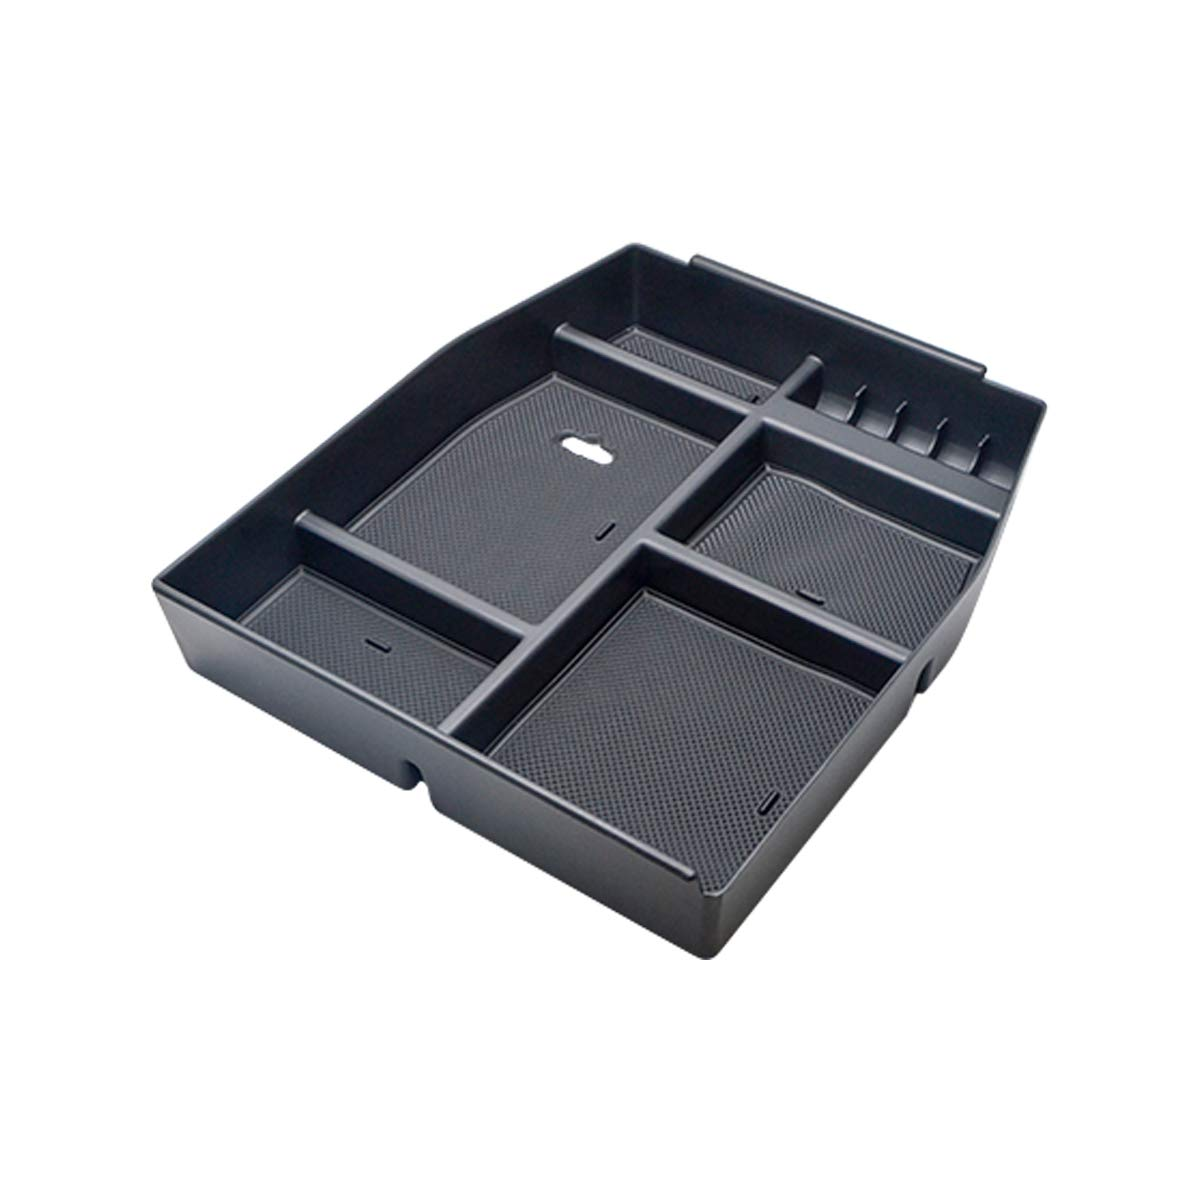 Center Console Armrest Insert Organizer ABS Tray Pallet Storage Box Container for Ford F150 2015-2017